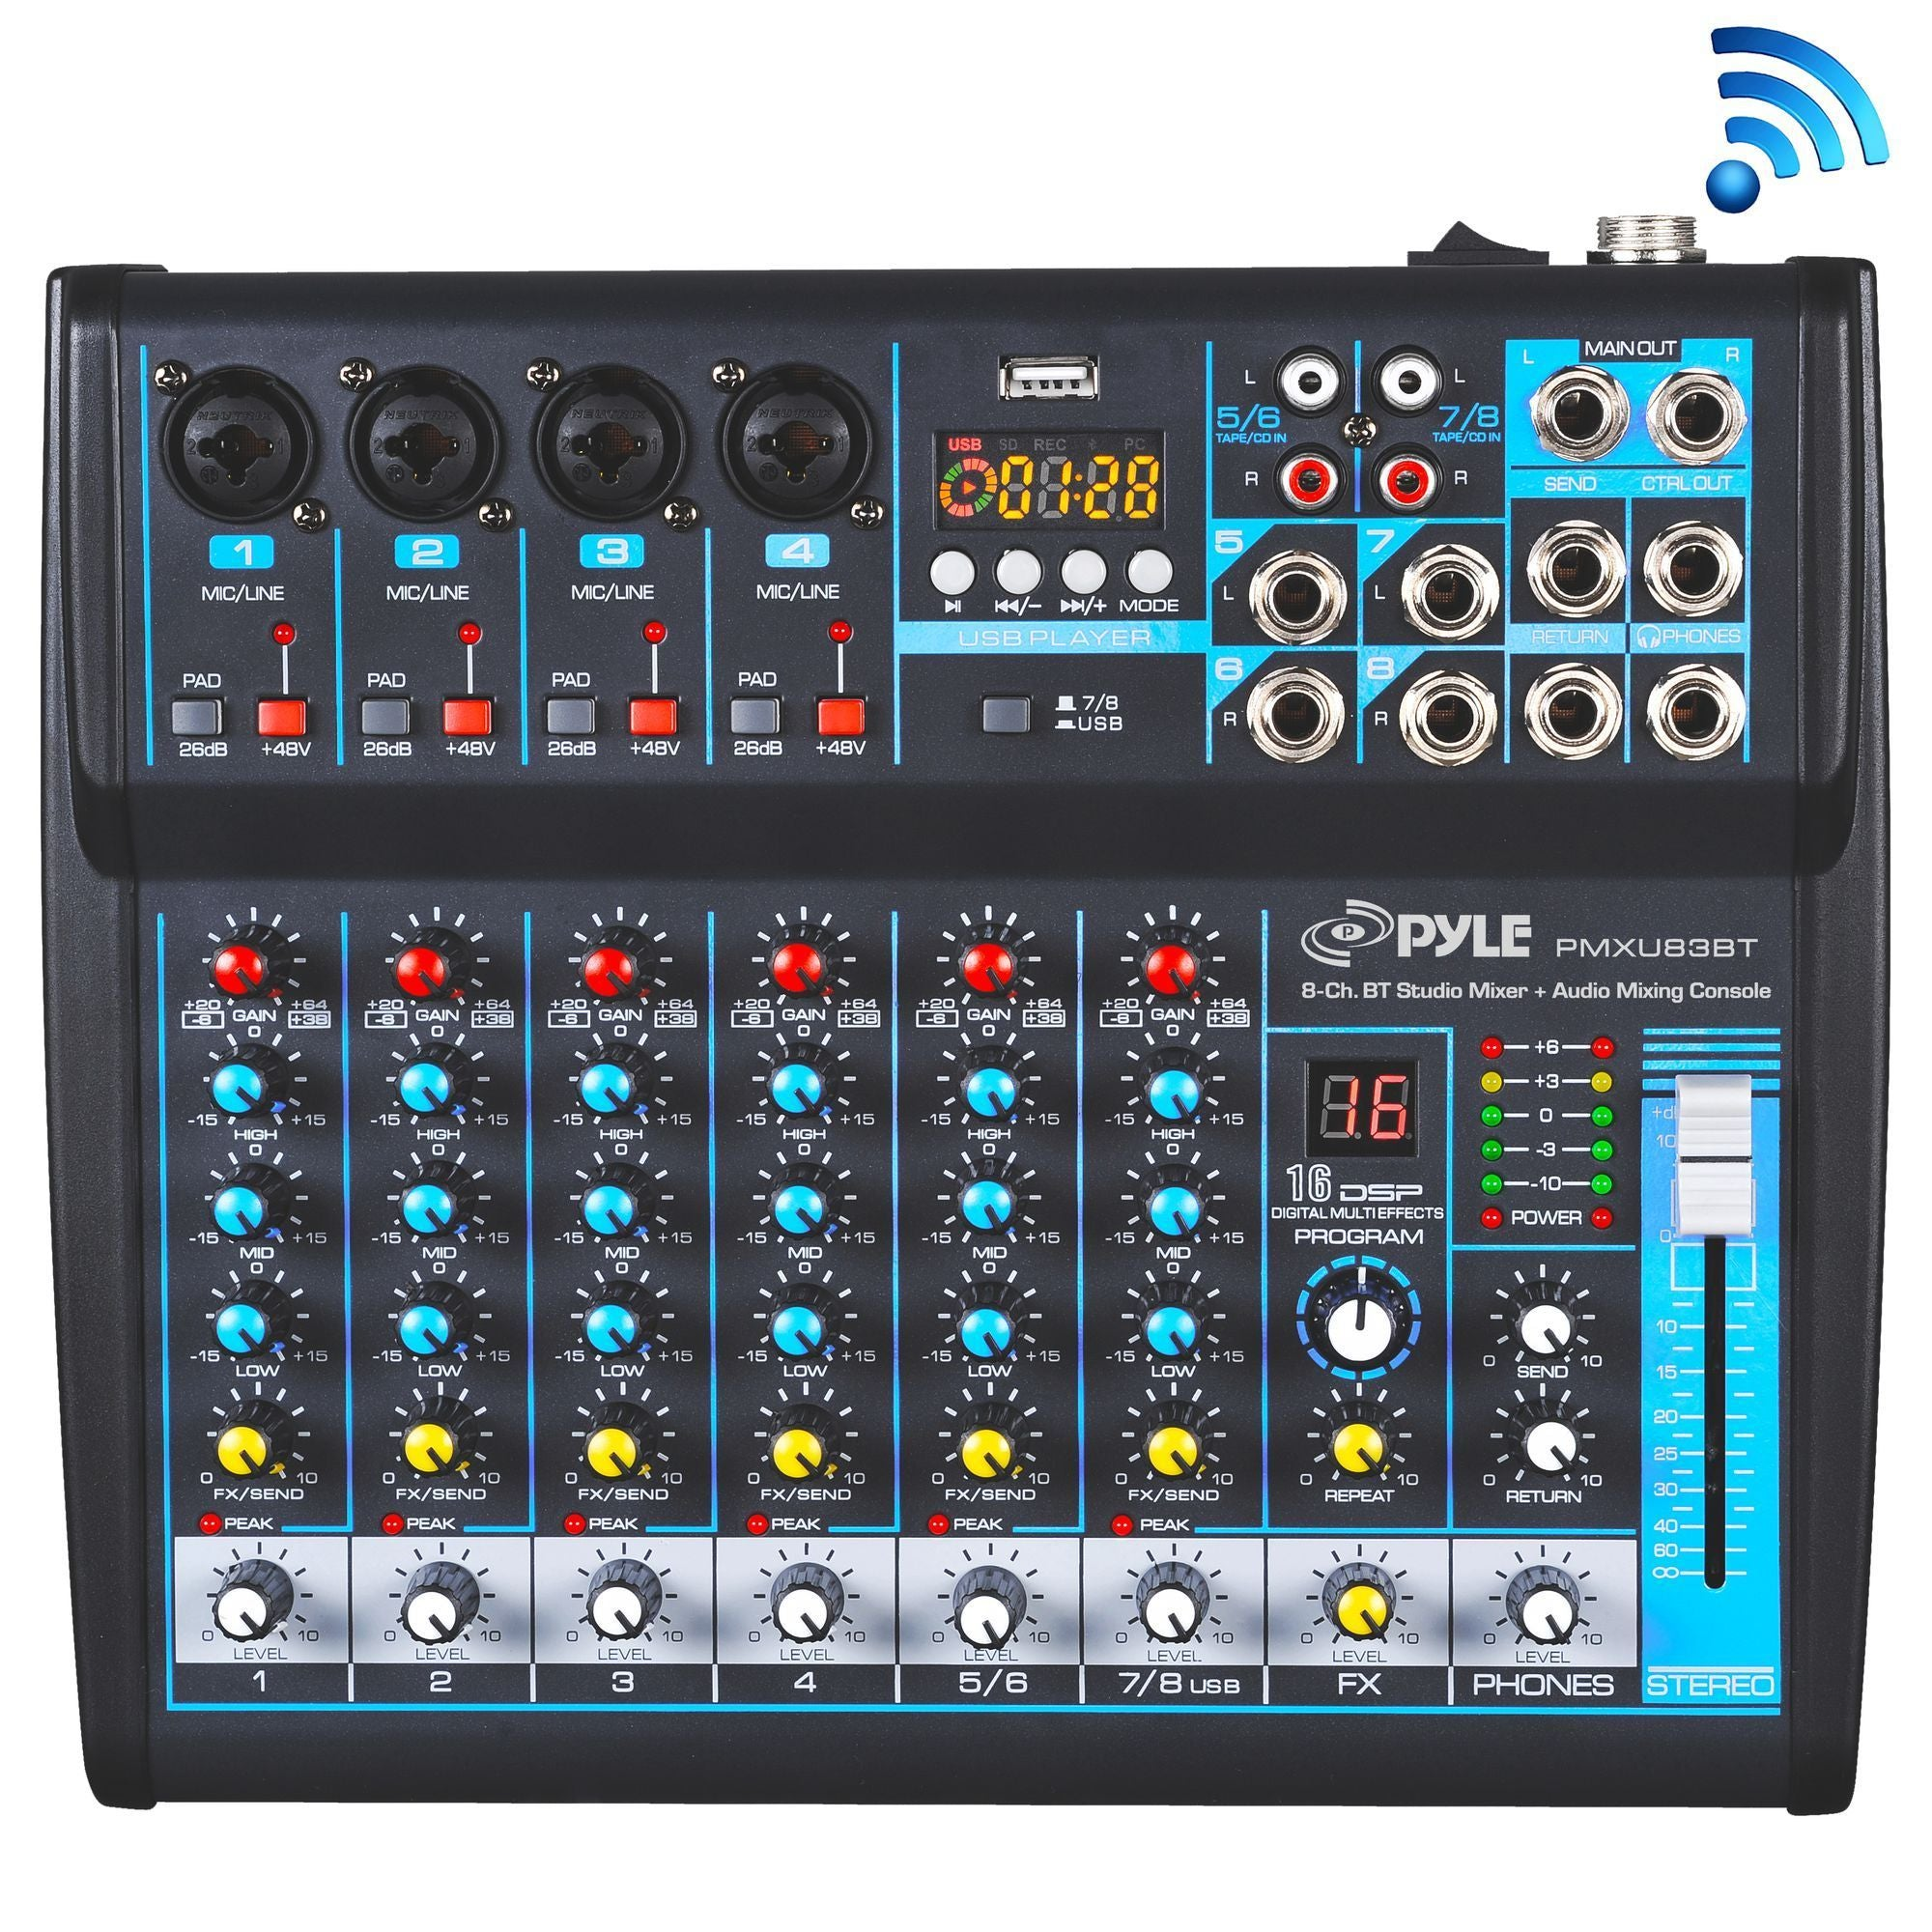 Pyle Professional Audio Mixer Sound Board Console - Desk System Interface with 8 Channel, USB, Bluetooth, Digital MP3 Computer Input, 48V Phantom Power, Stereo DJ Streaming & FX16 Bit DSP-(PMXU83BT)